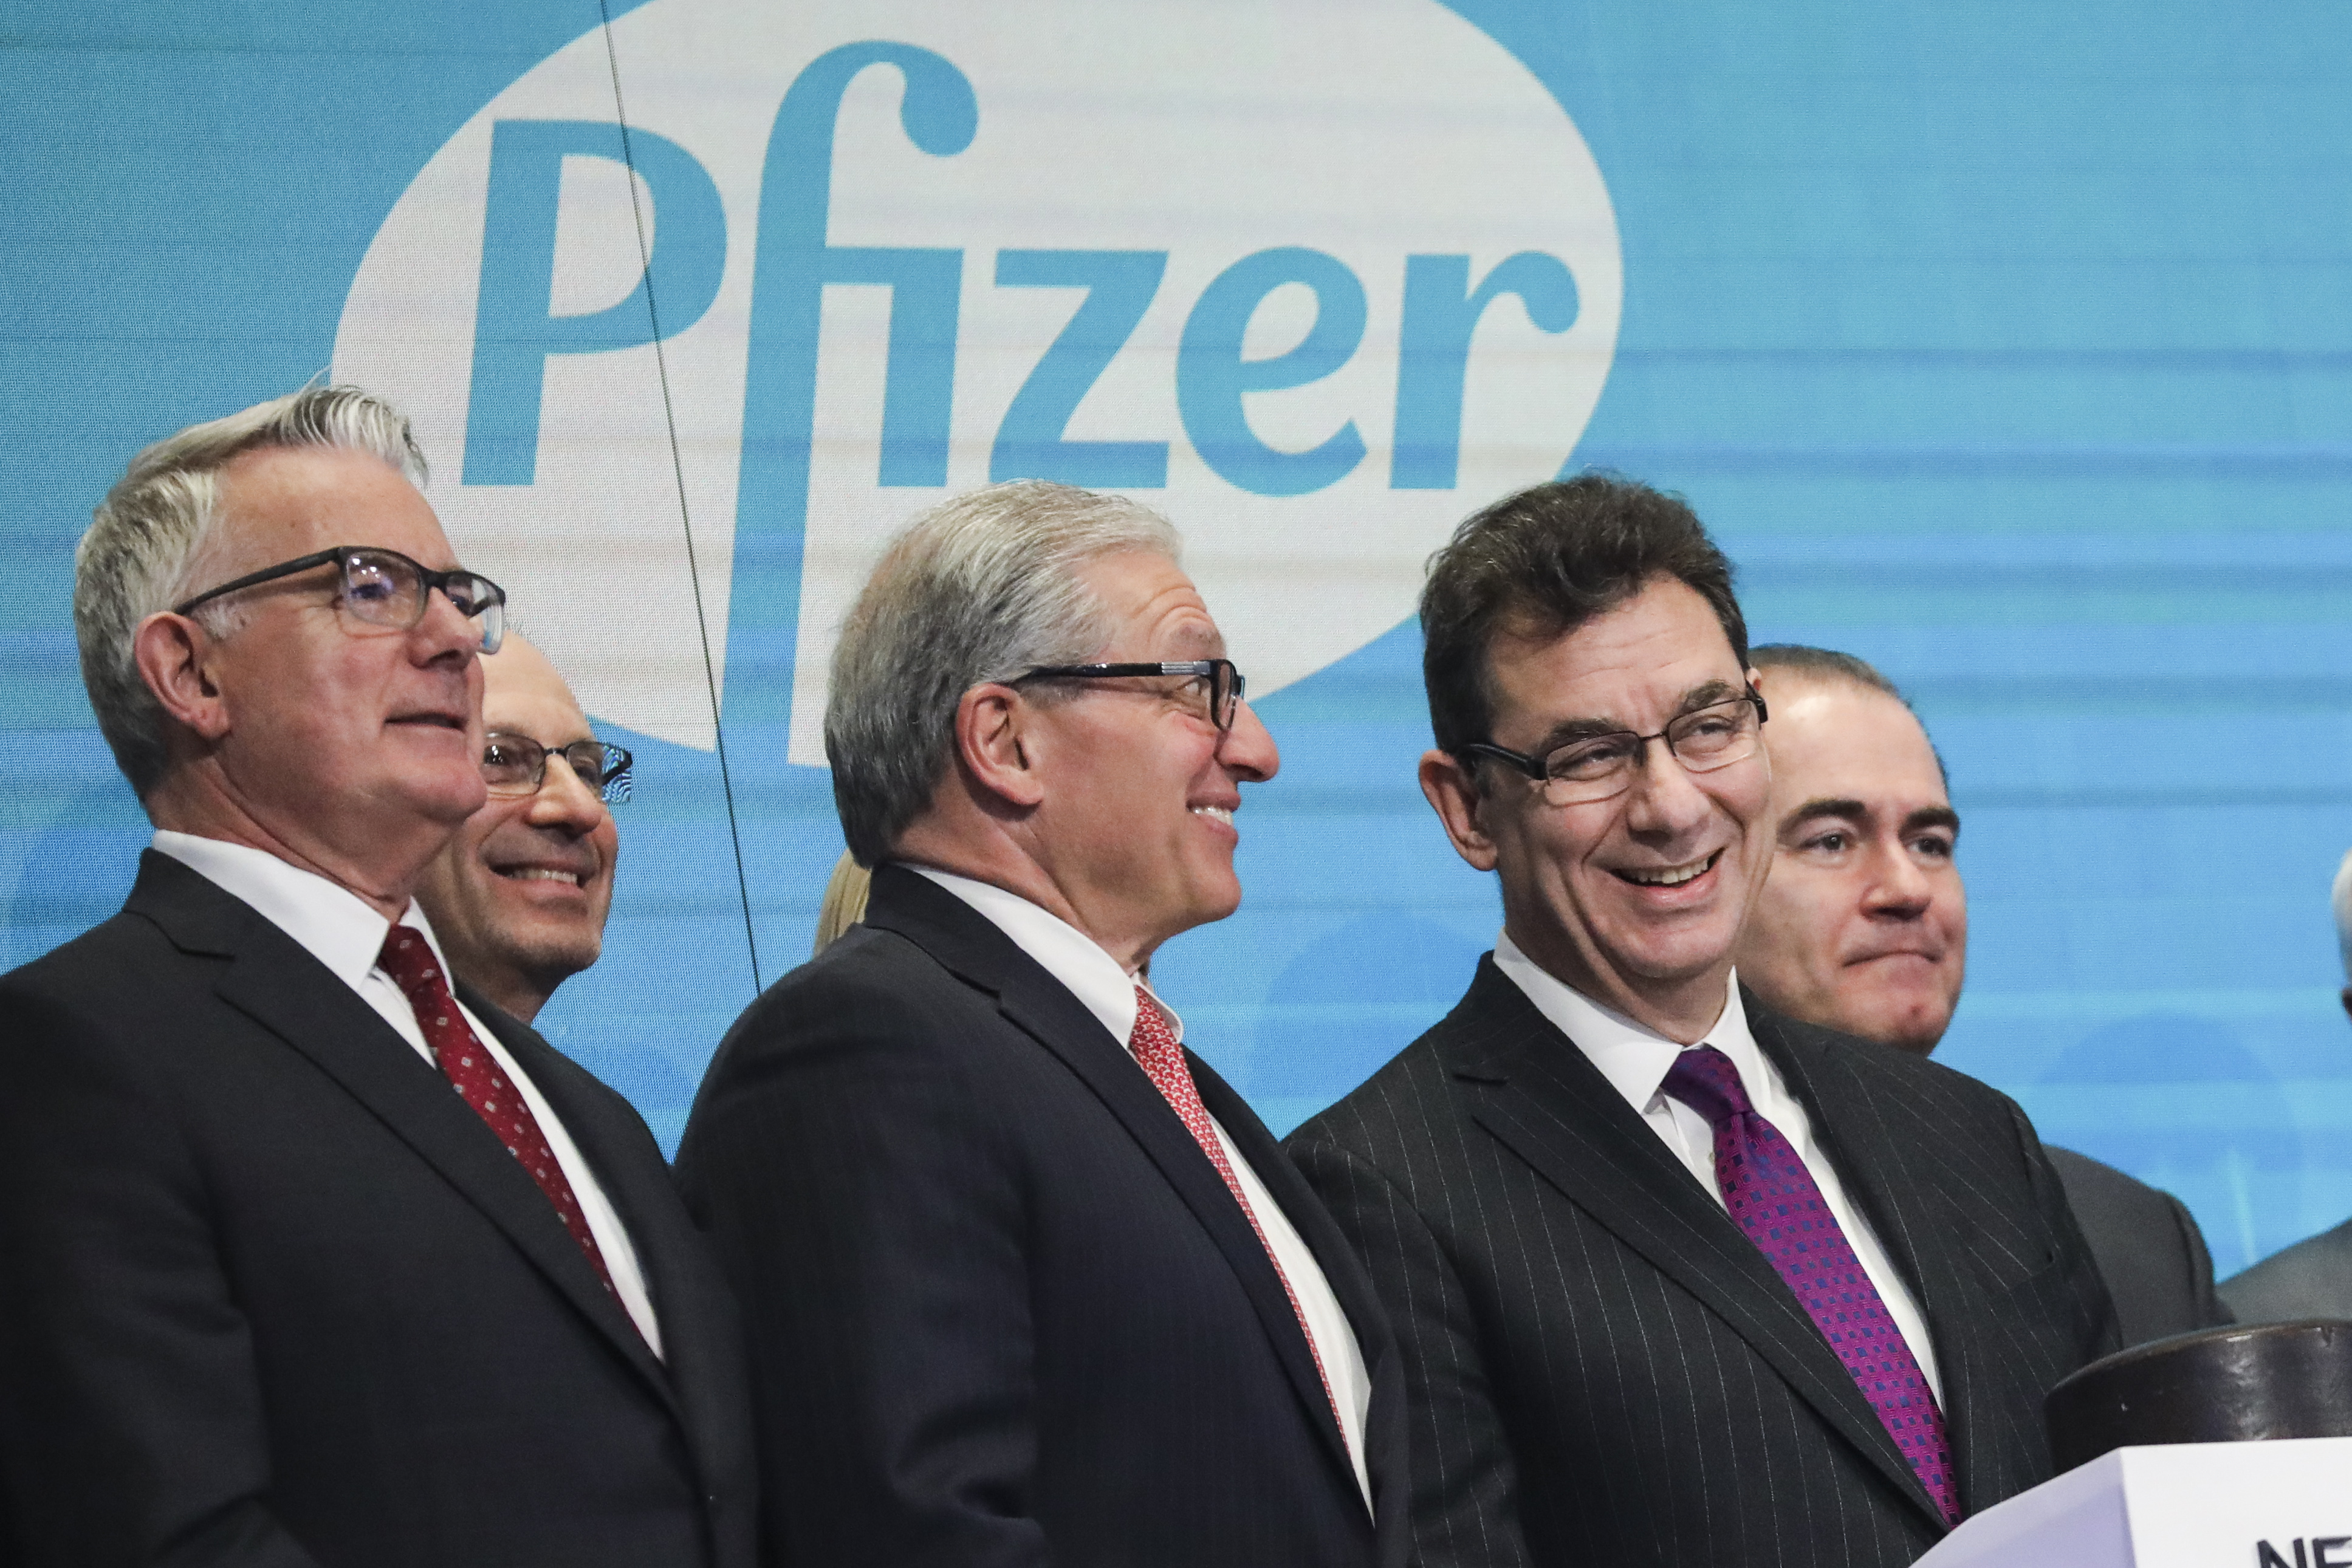 Albert Bourla (R), chief executive officer of Pfizer pharmaceutical company, waits to ring the closing bell at the New York Stock Exchange (NYSE) on Thursday afternoon, January 17, 2019 in New York City. (Photo by Drew Angerer/Getty Images)